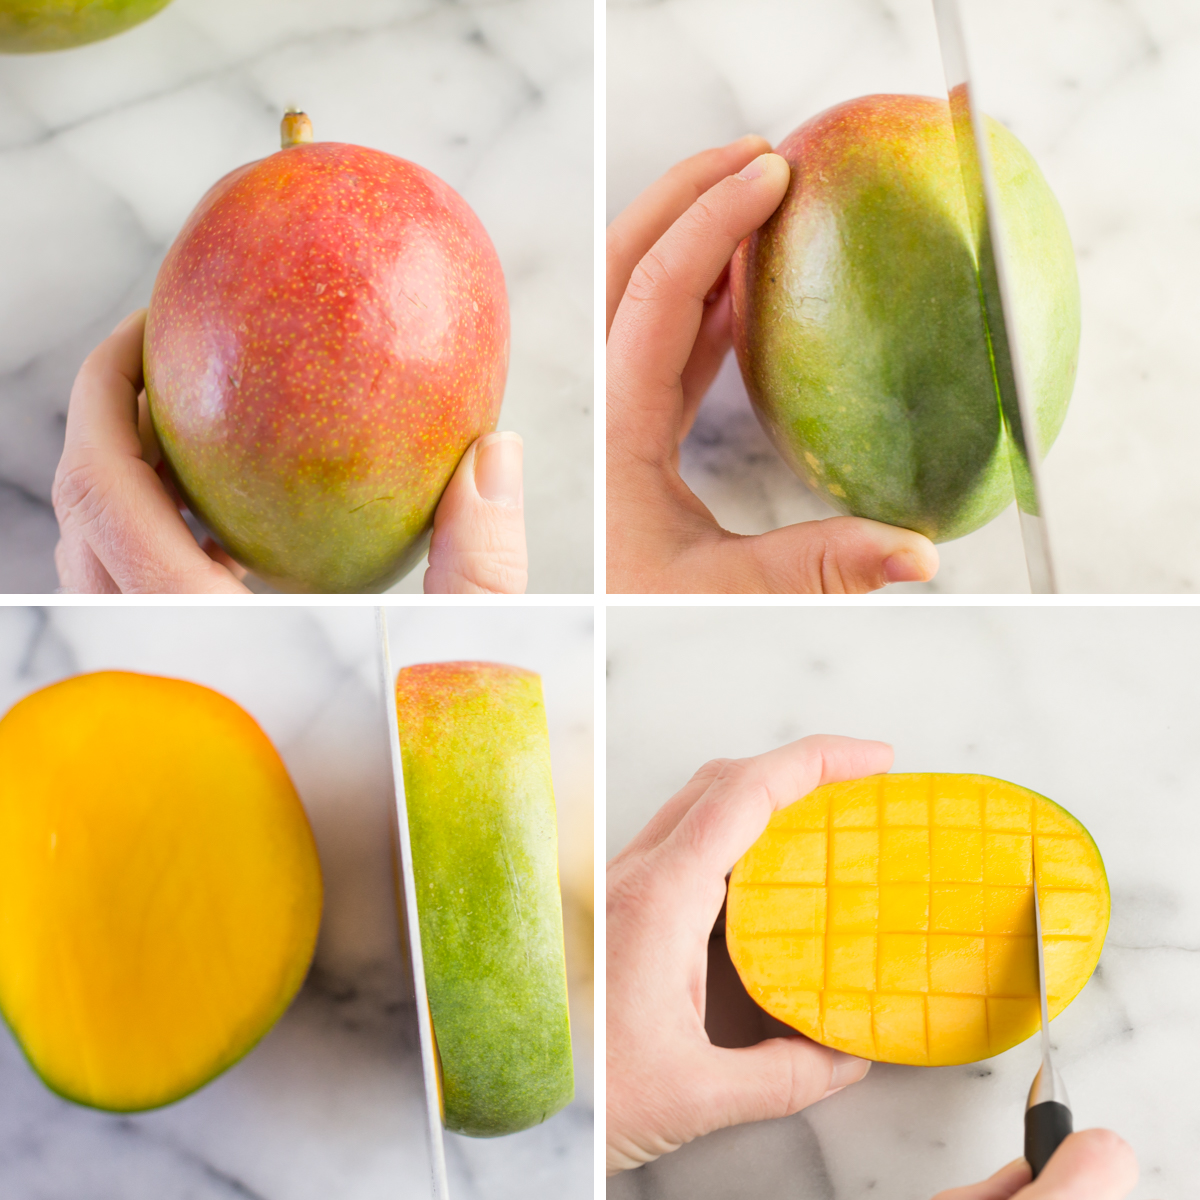 Four step by step pictures showing how to cut a mango.